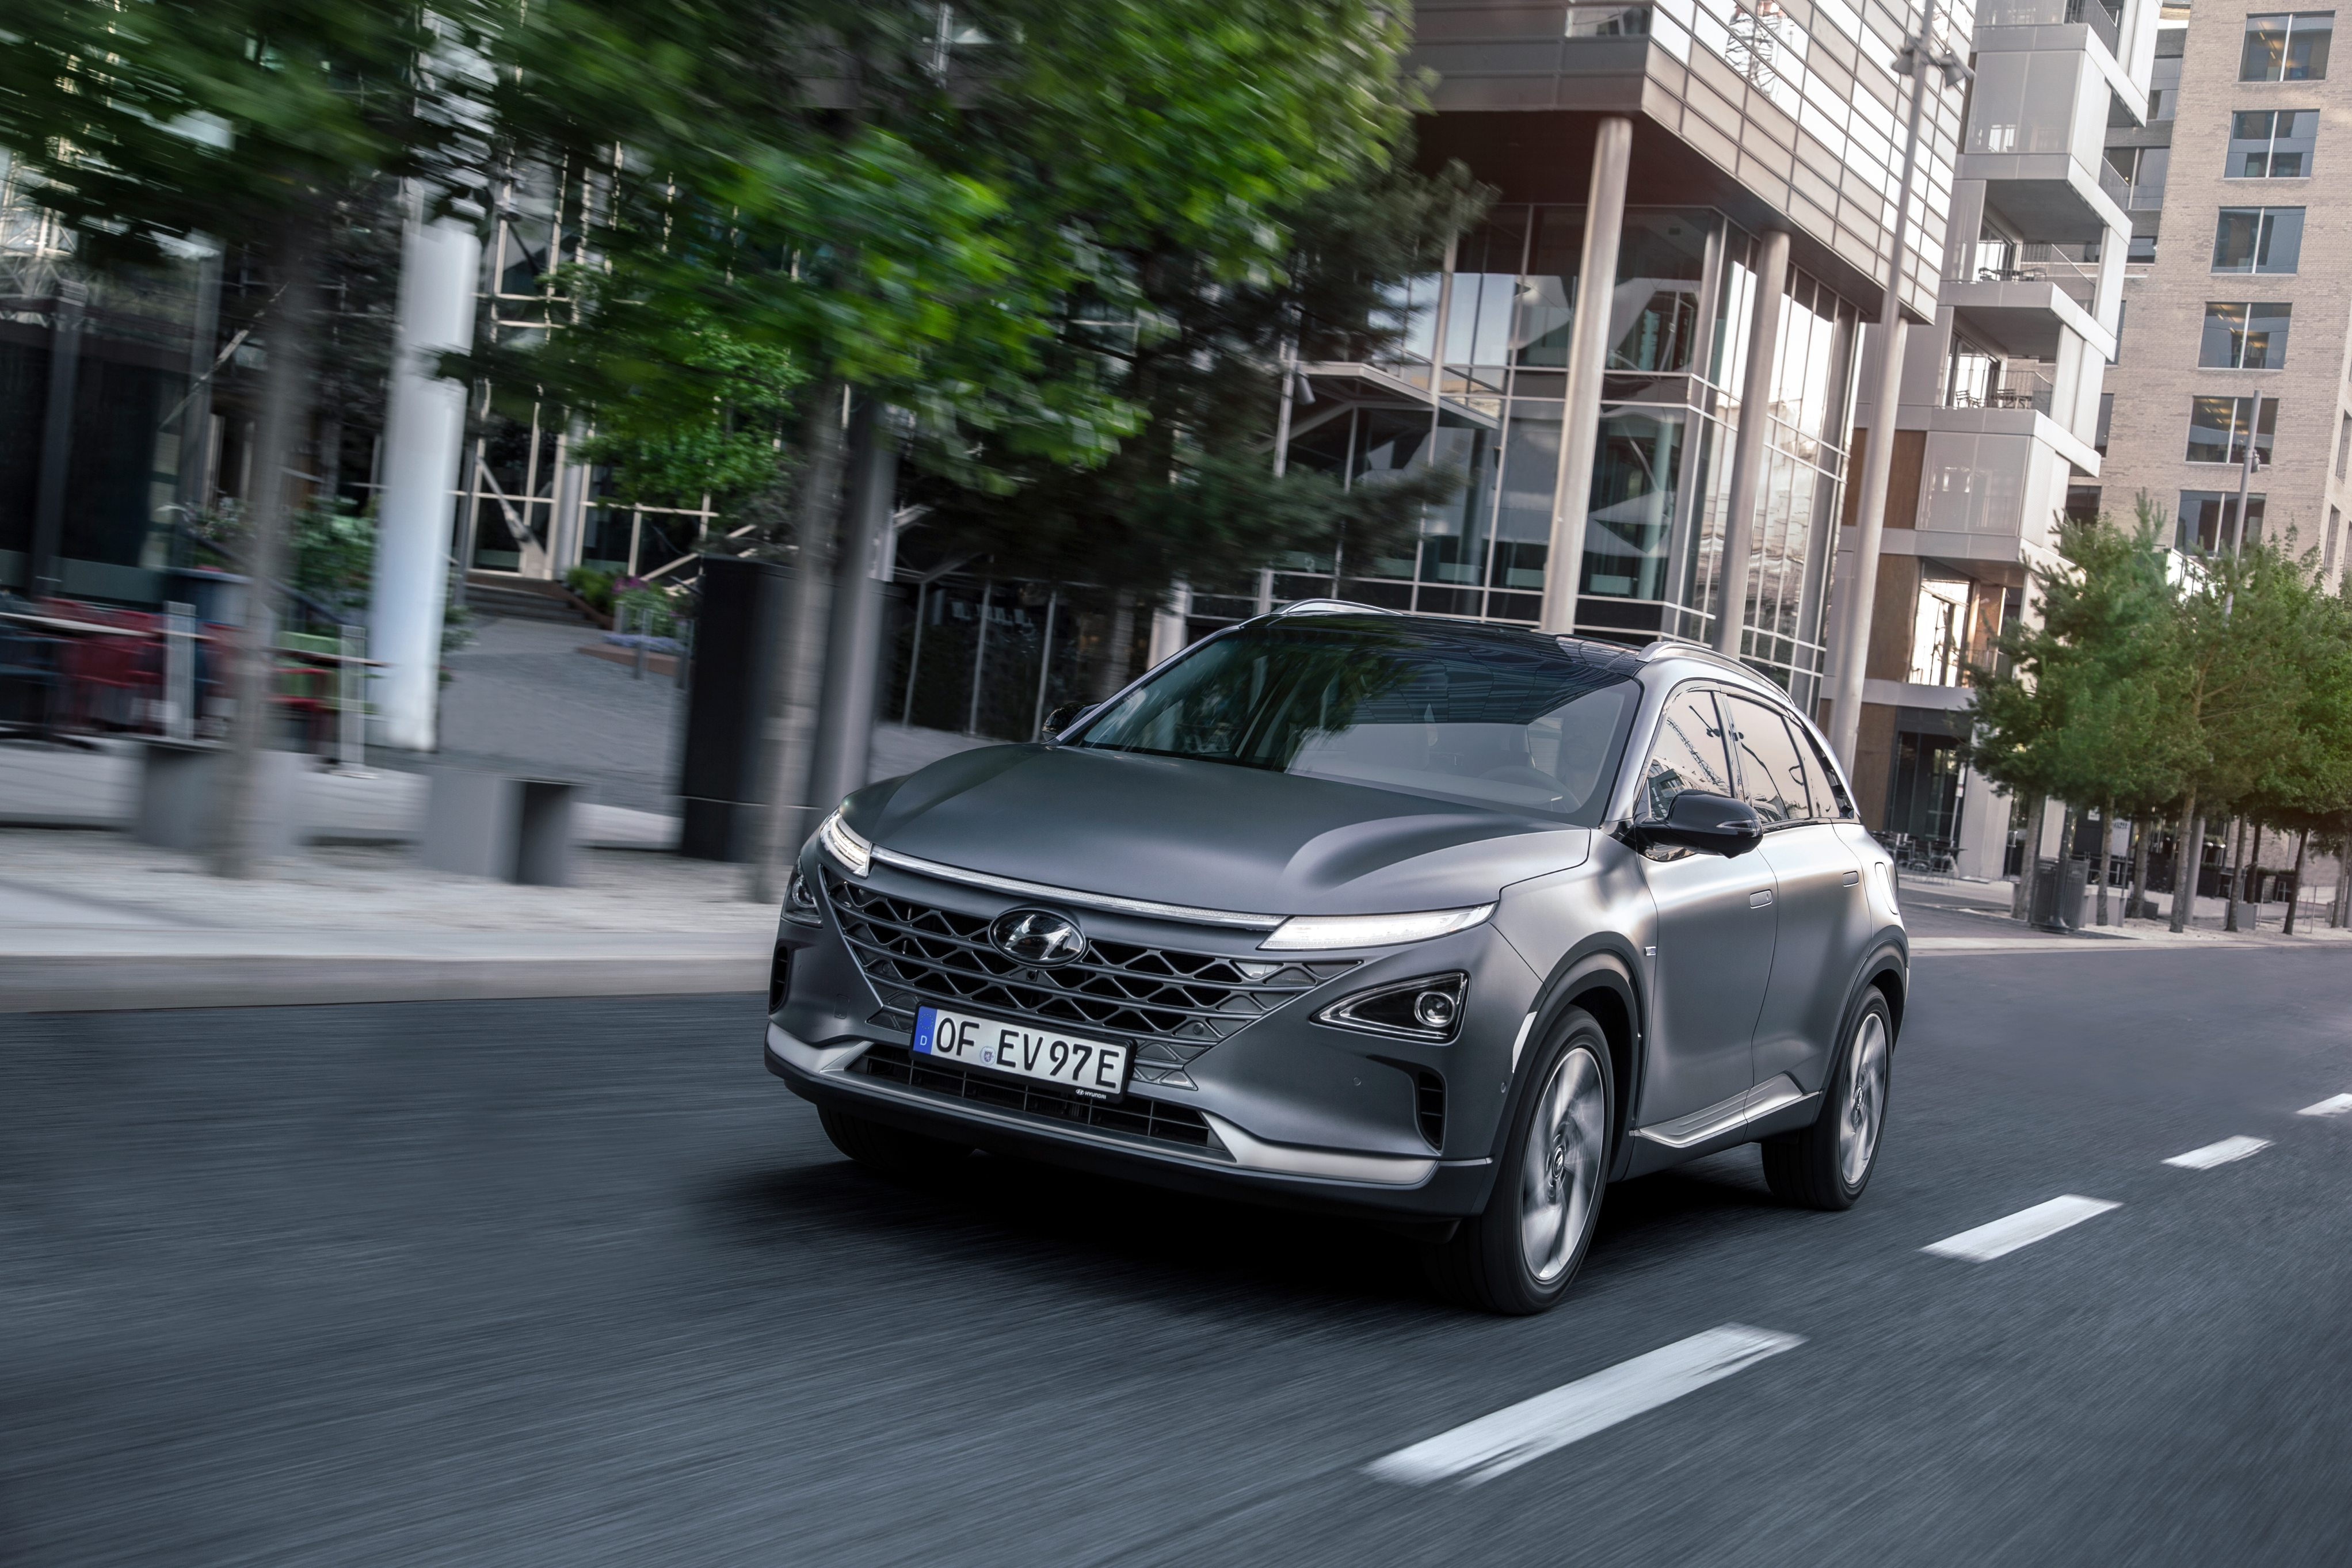 The Hyundai Nexo is a hydrogen fuel cell powered crossover SUV